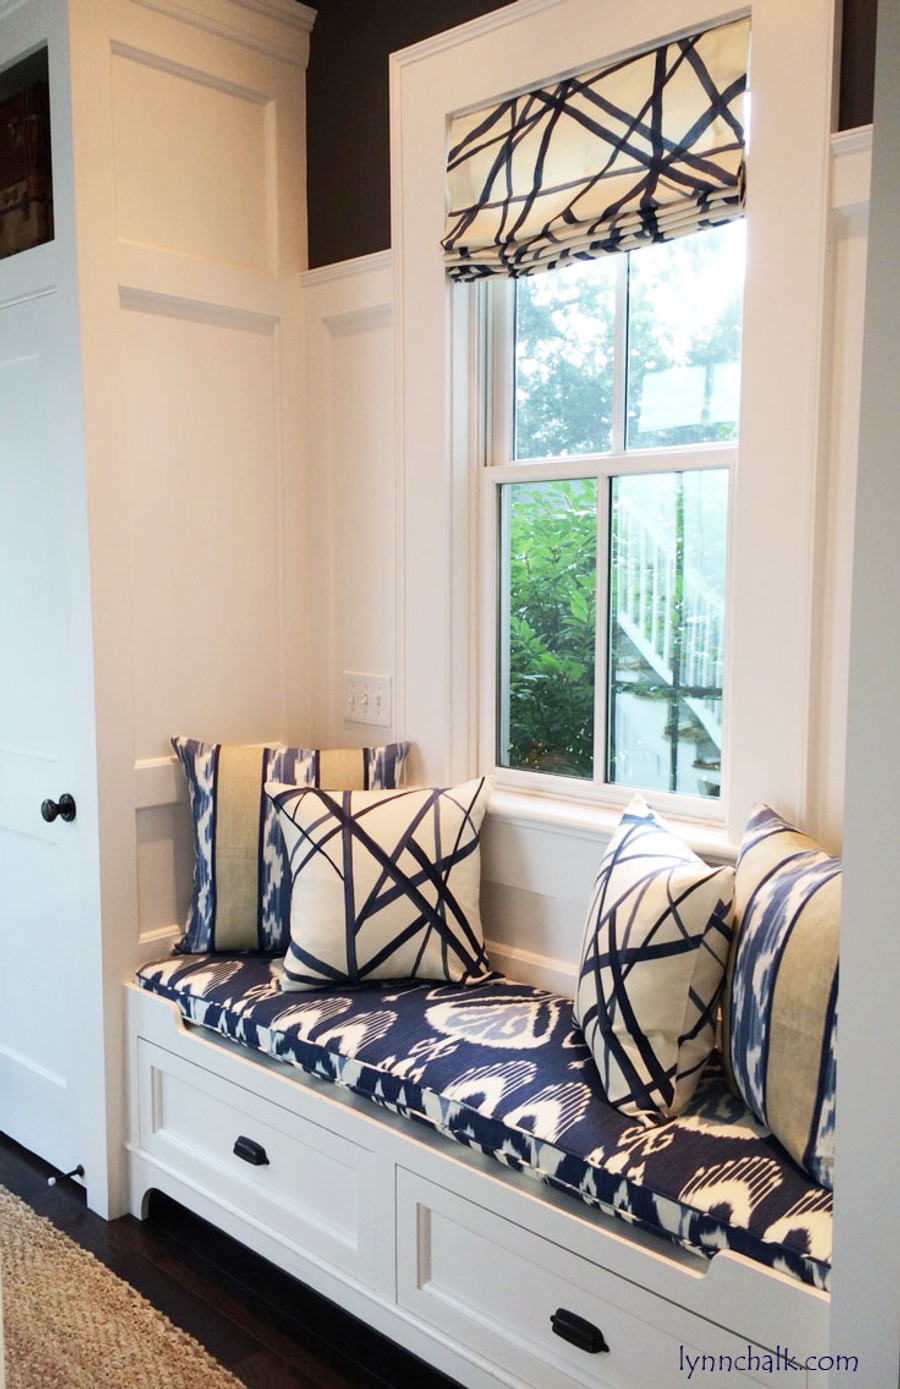 Custom Roman Shade and Pillows by Lynn Chalk in Kelly Wearstler Channels in Periwinkle.  Cushion is in Bansuri in Iris and back pillows are in Ranjani from Kravet.